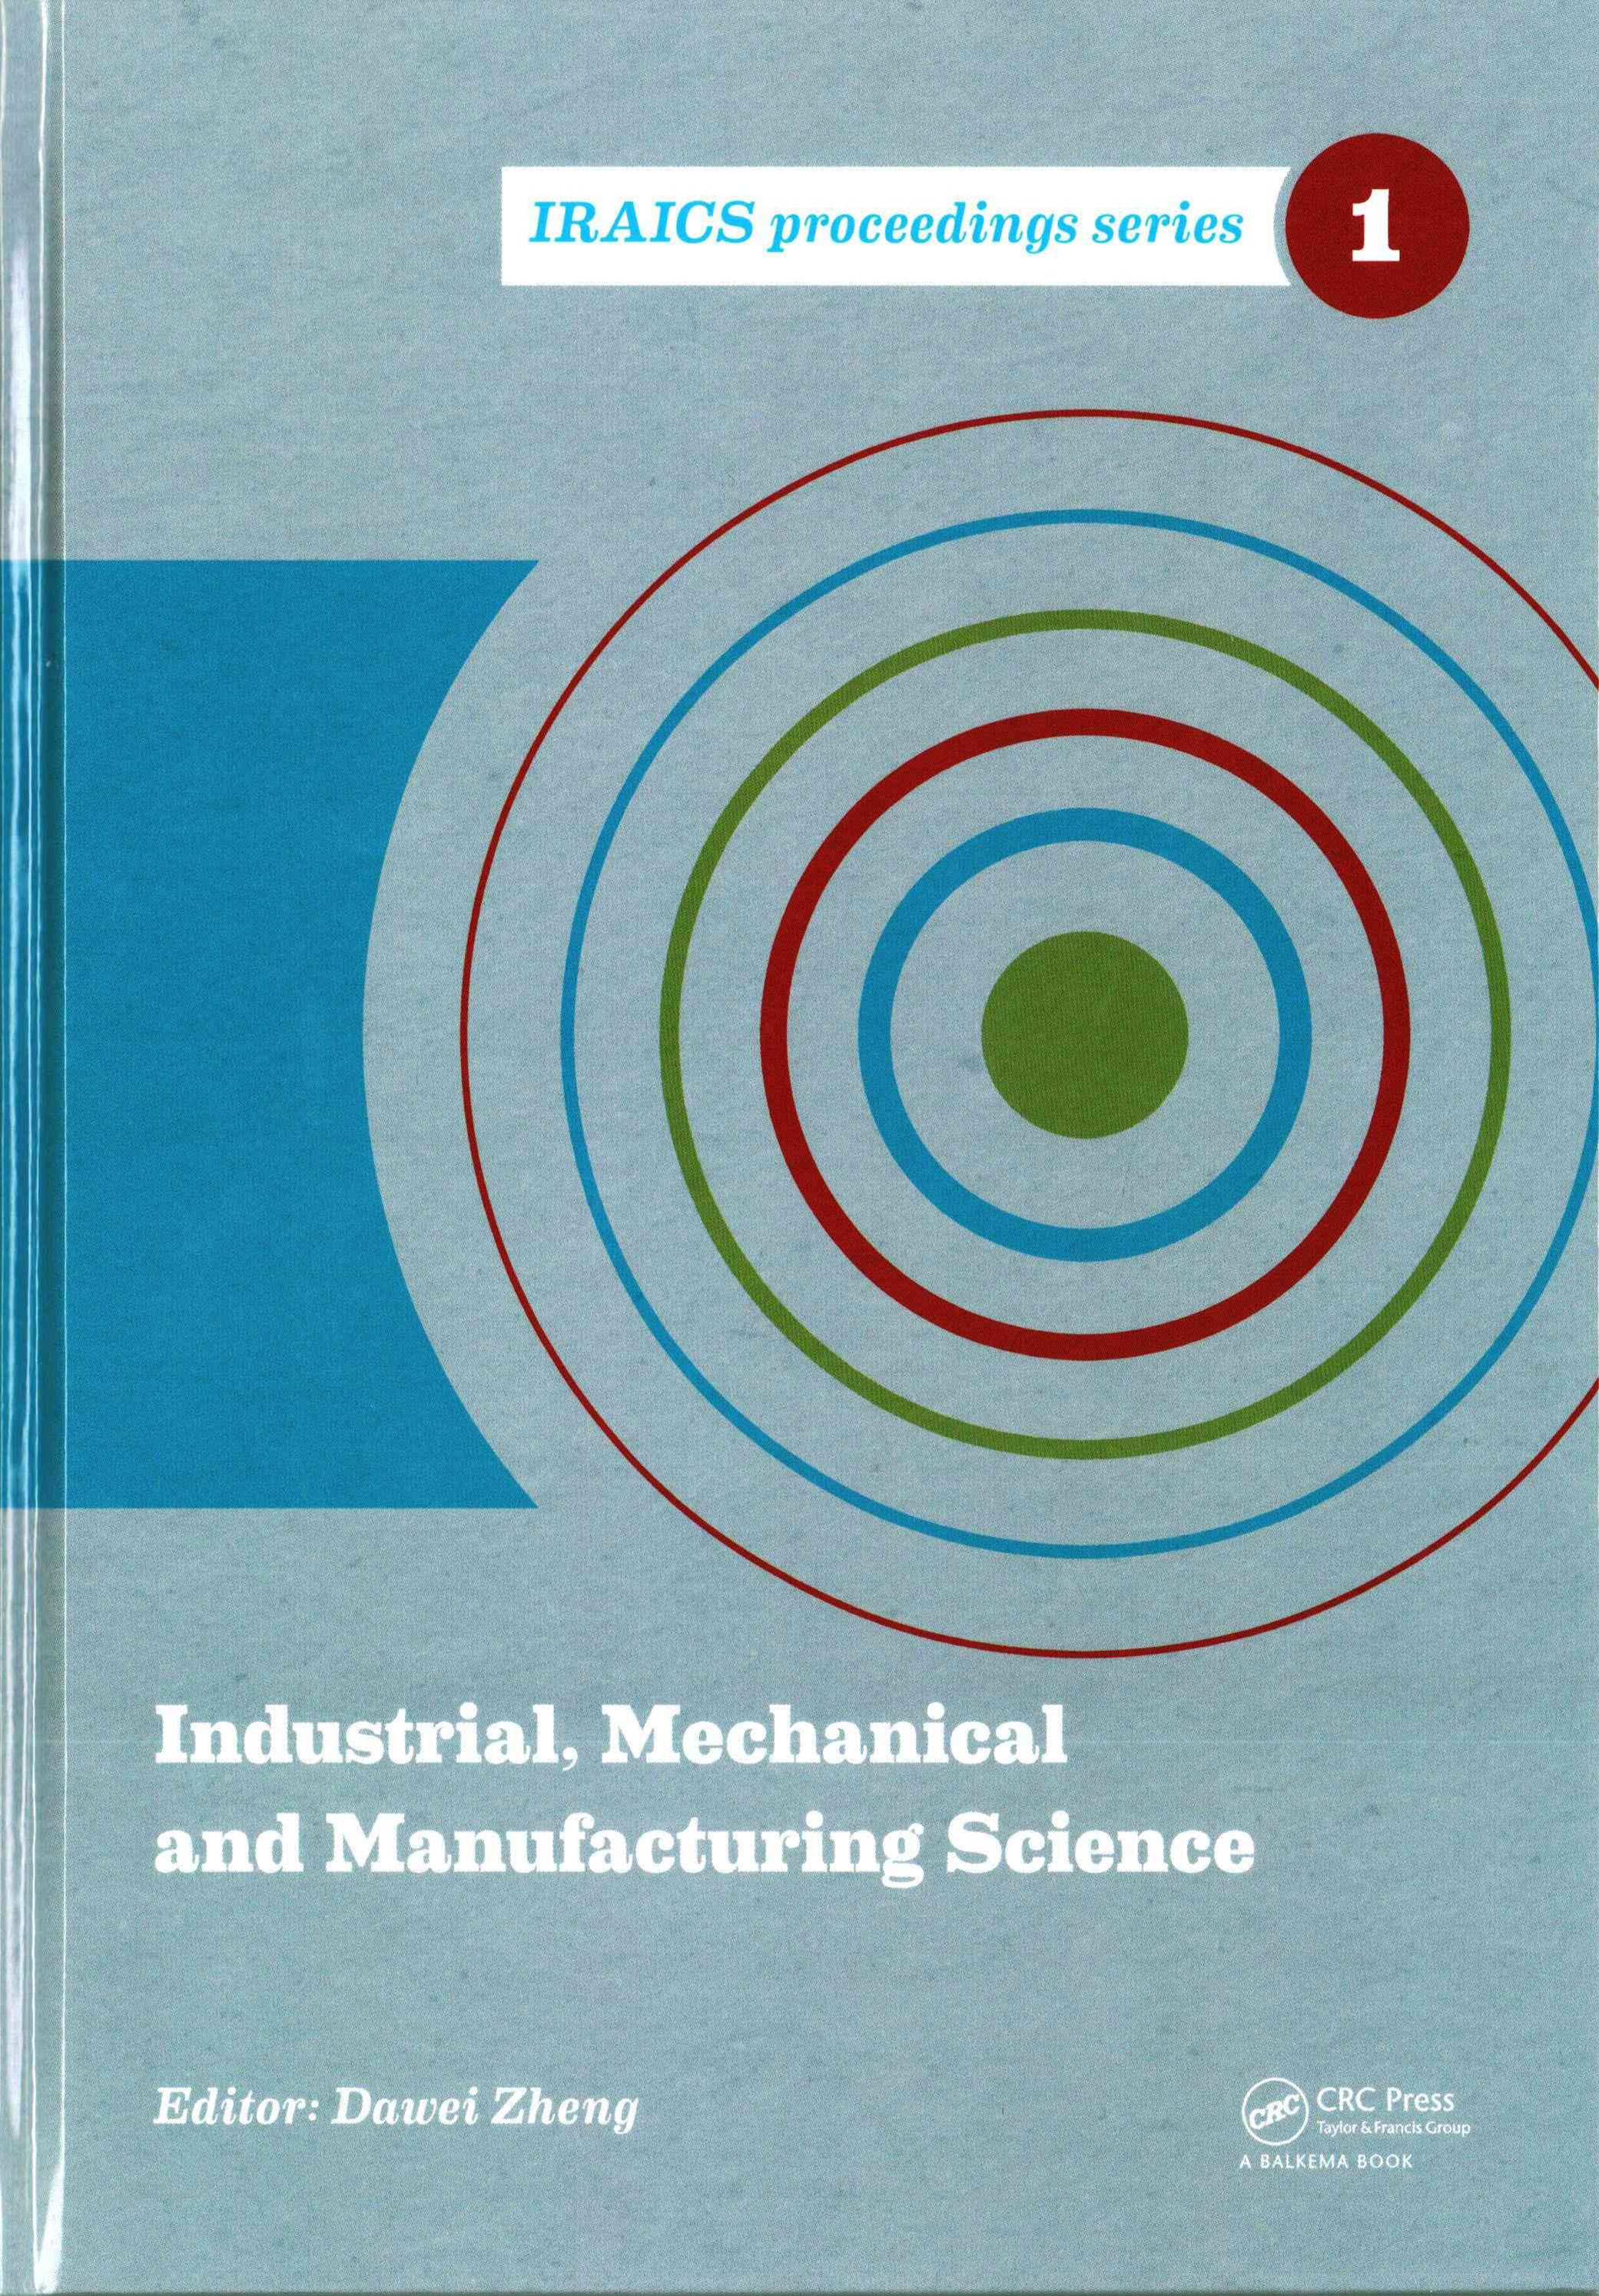 Industrial, Mechanical and Manufacturing Science